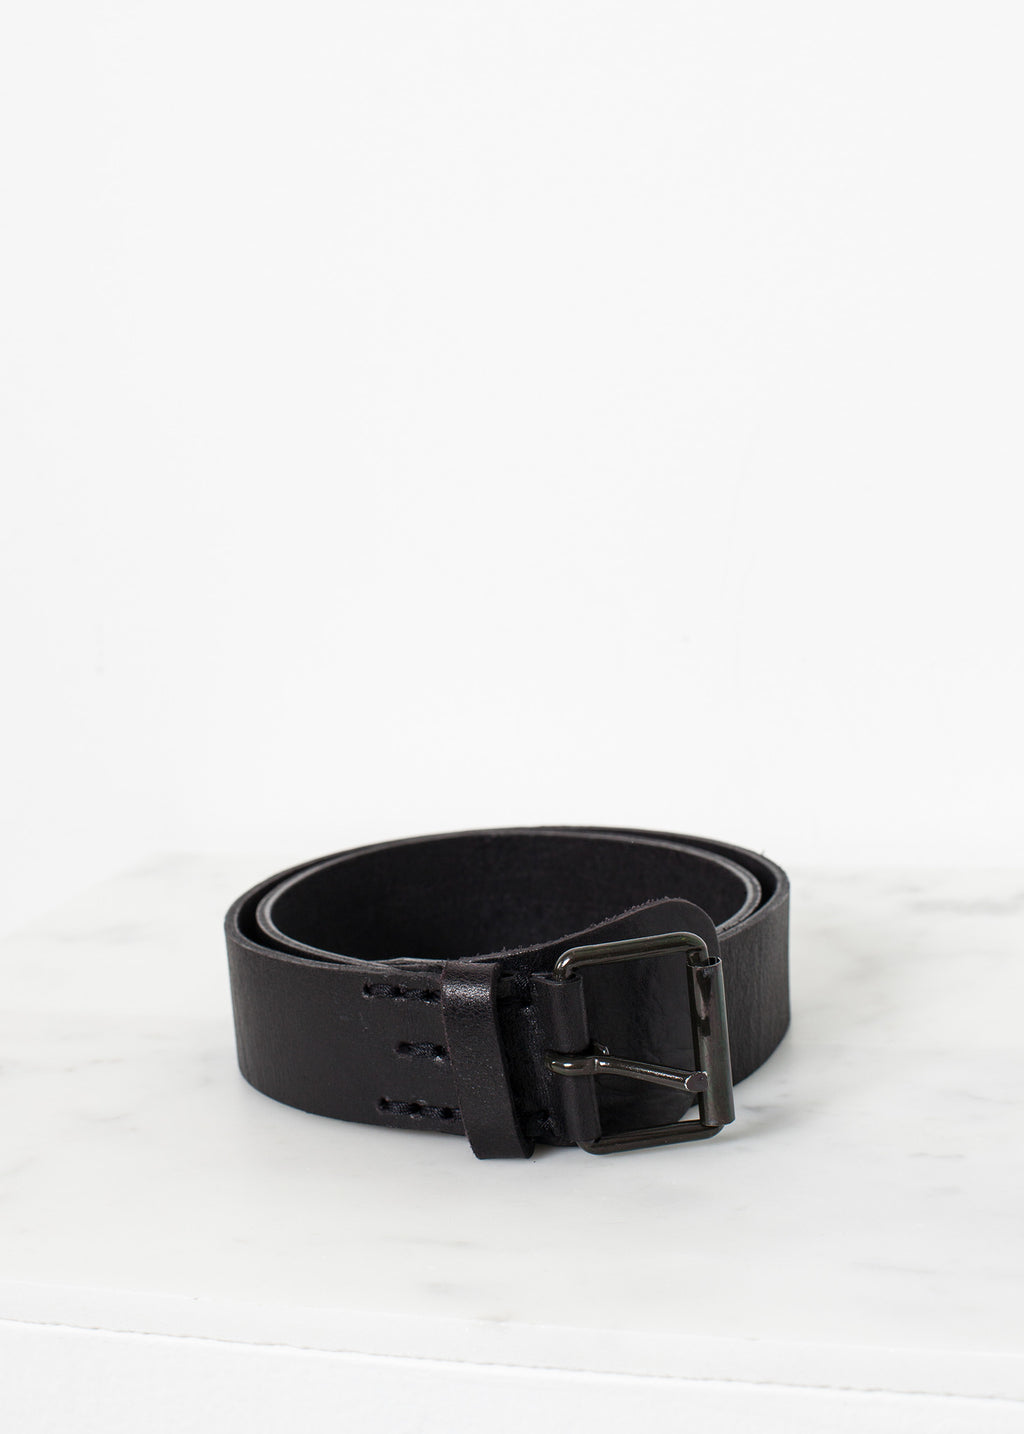 Bro Belt in Leather